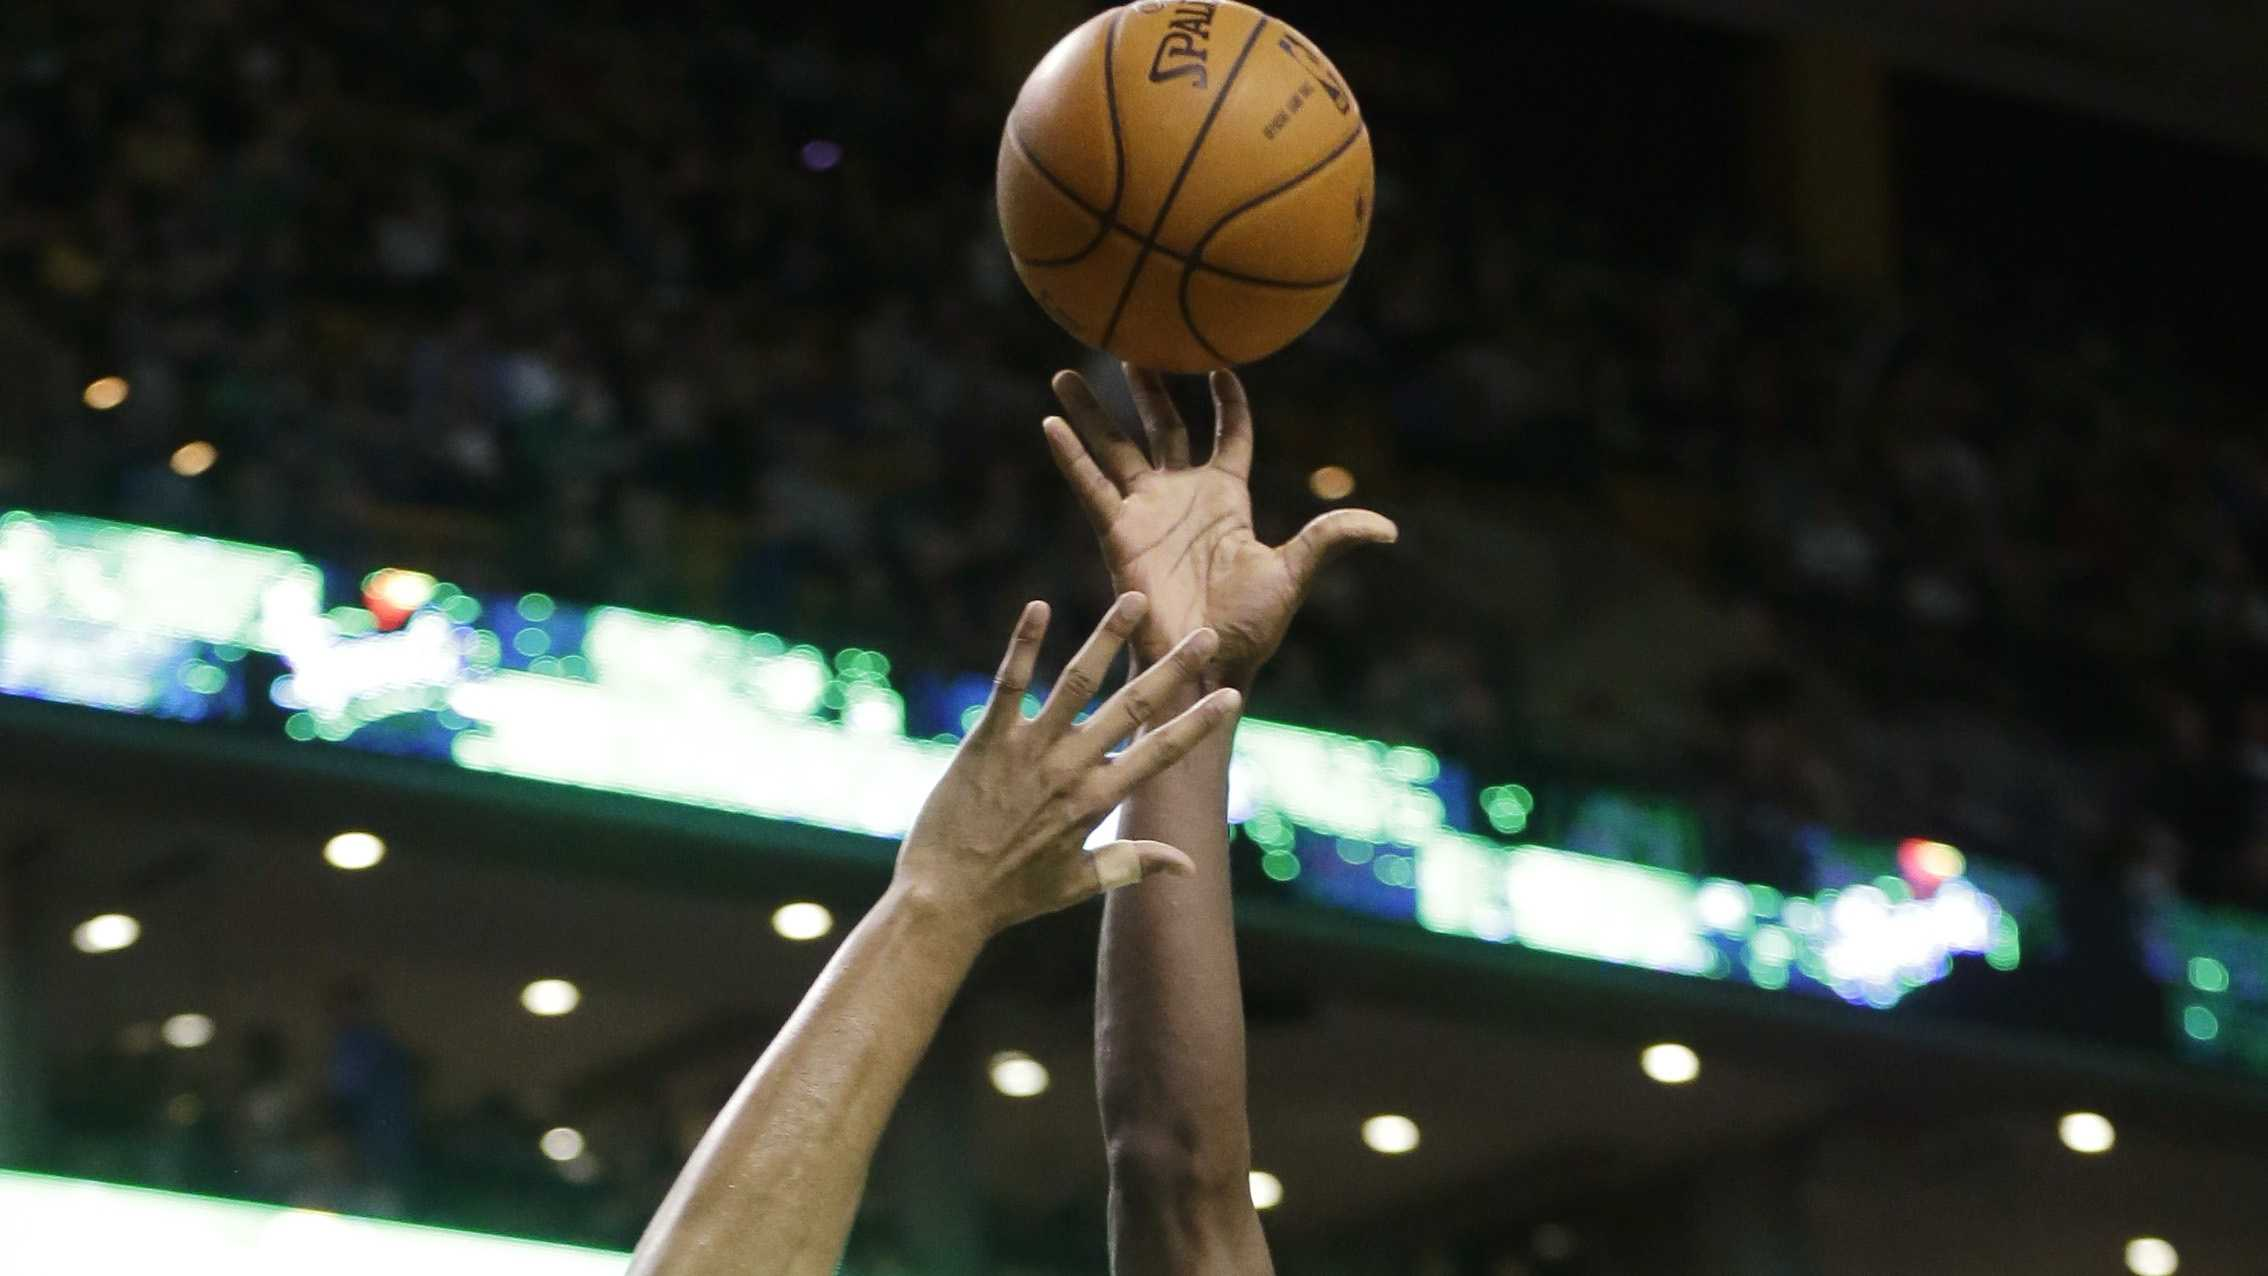 Boston Celtics forward Jeff Green (8) shoots at the basket as Orlando Magic forward Tobias Harris (12) tries to block in the first quarter of an NBA basketball game on Sunday, Feb. 2, 2014, in Boston. The Celtics won 96-89.